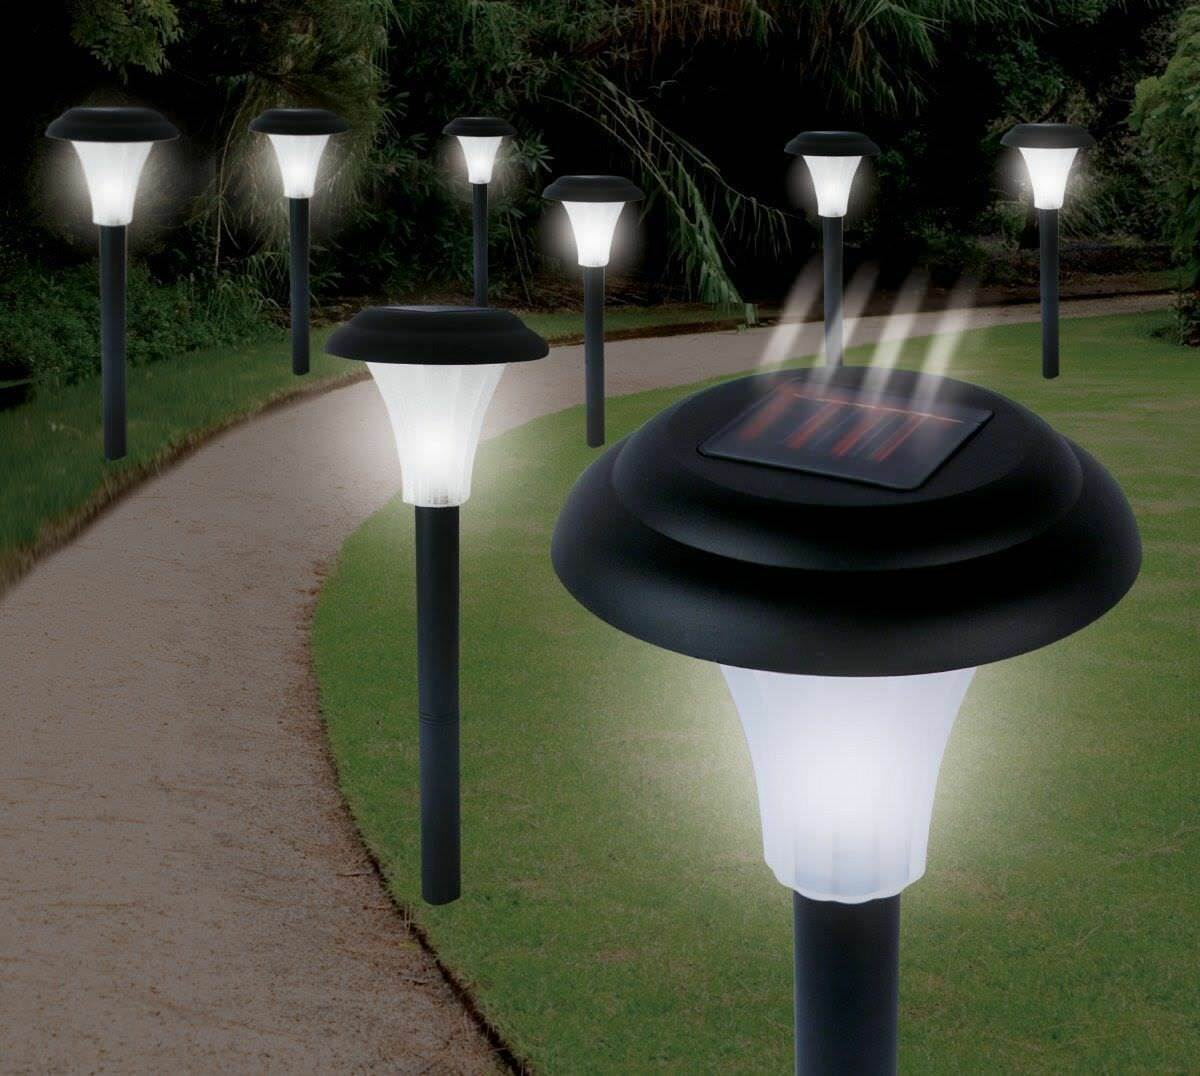 8 X Solar Powered Garden Lights Post Patio Outdoor Led Lighting Black Colour 1 Of 3free See More